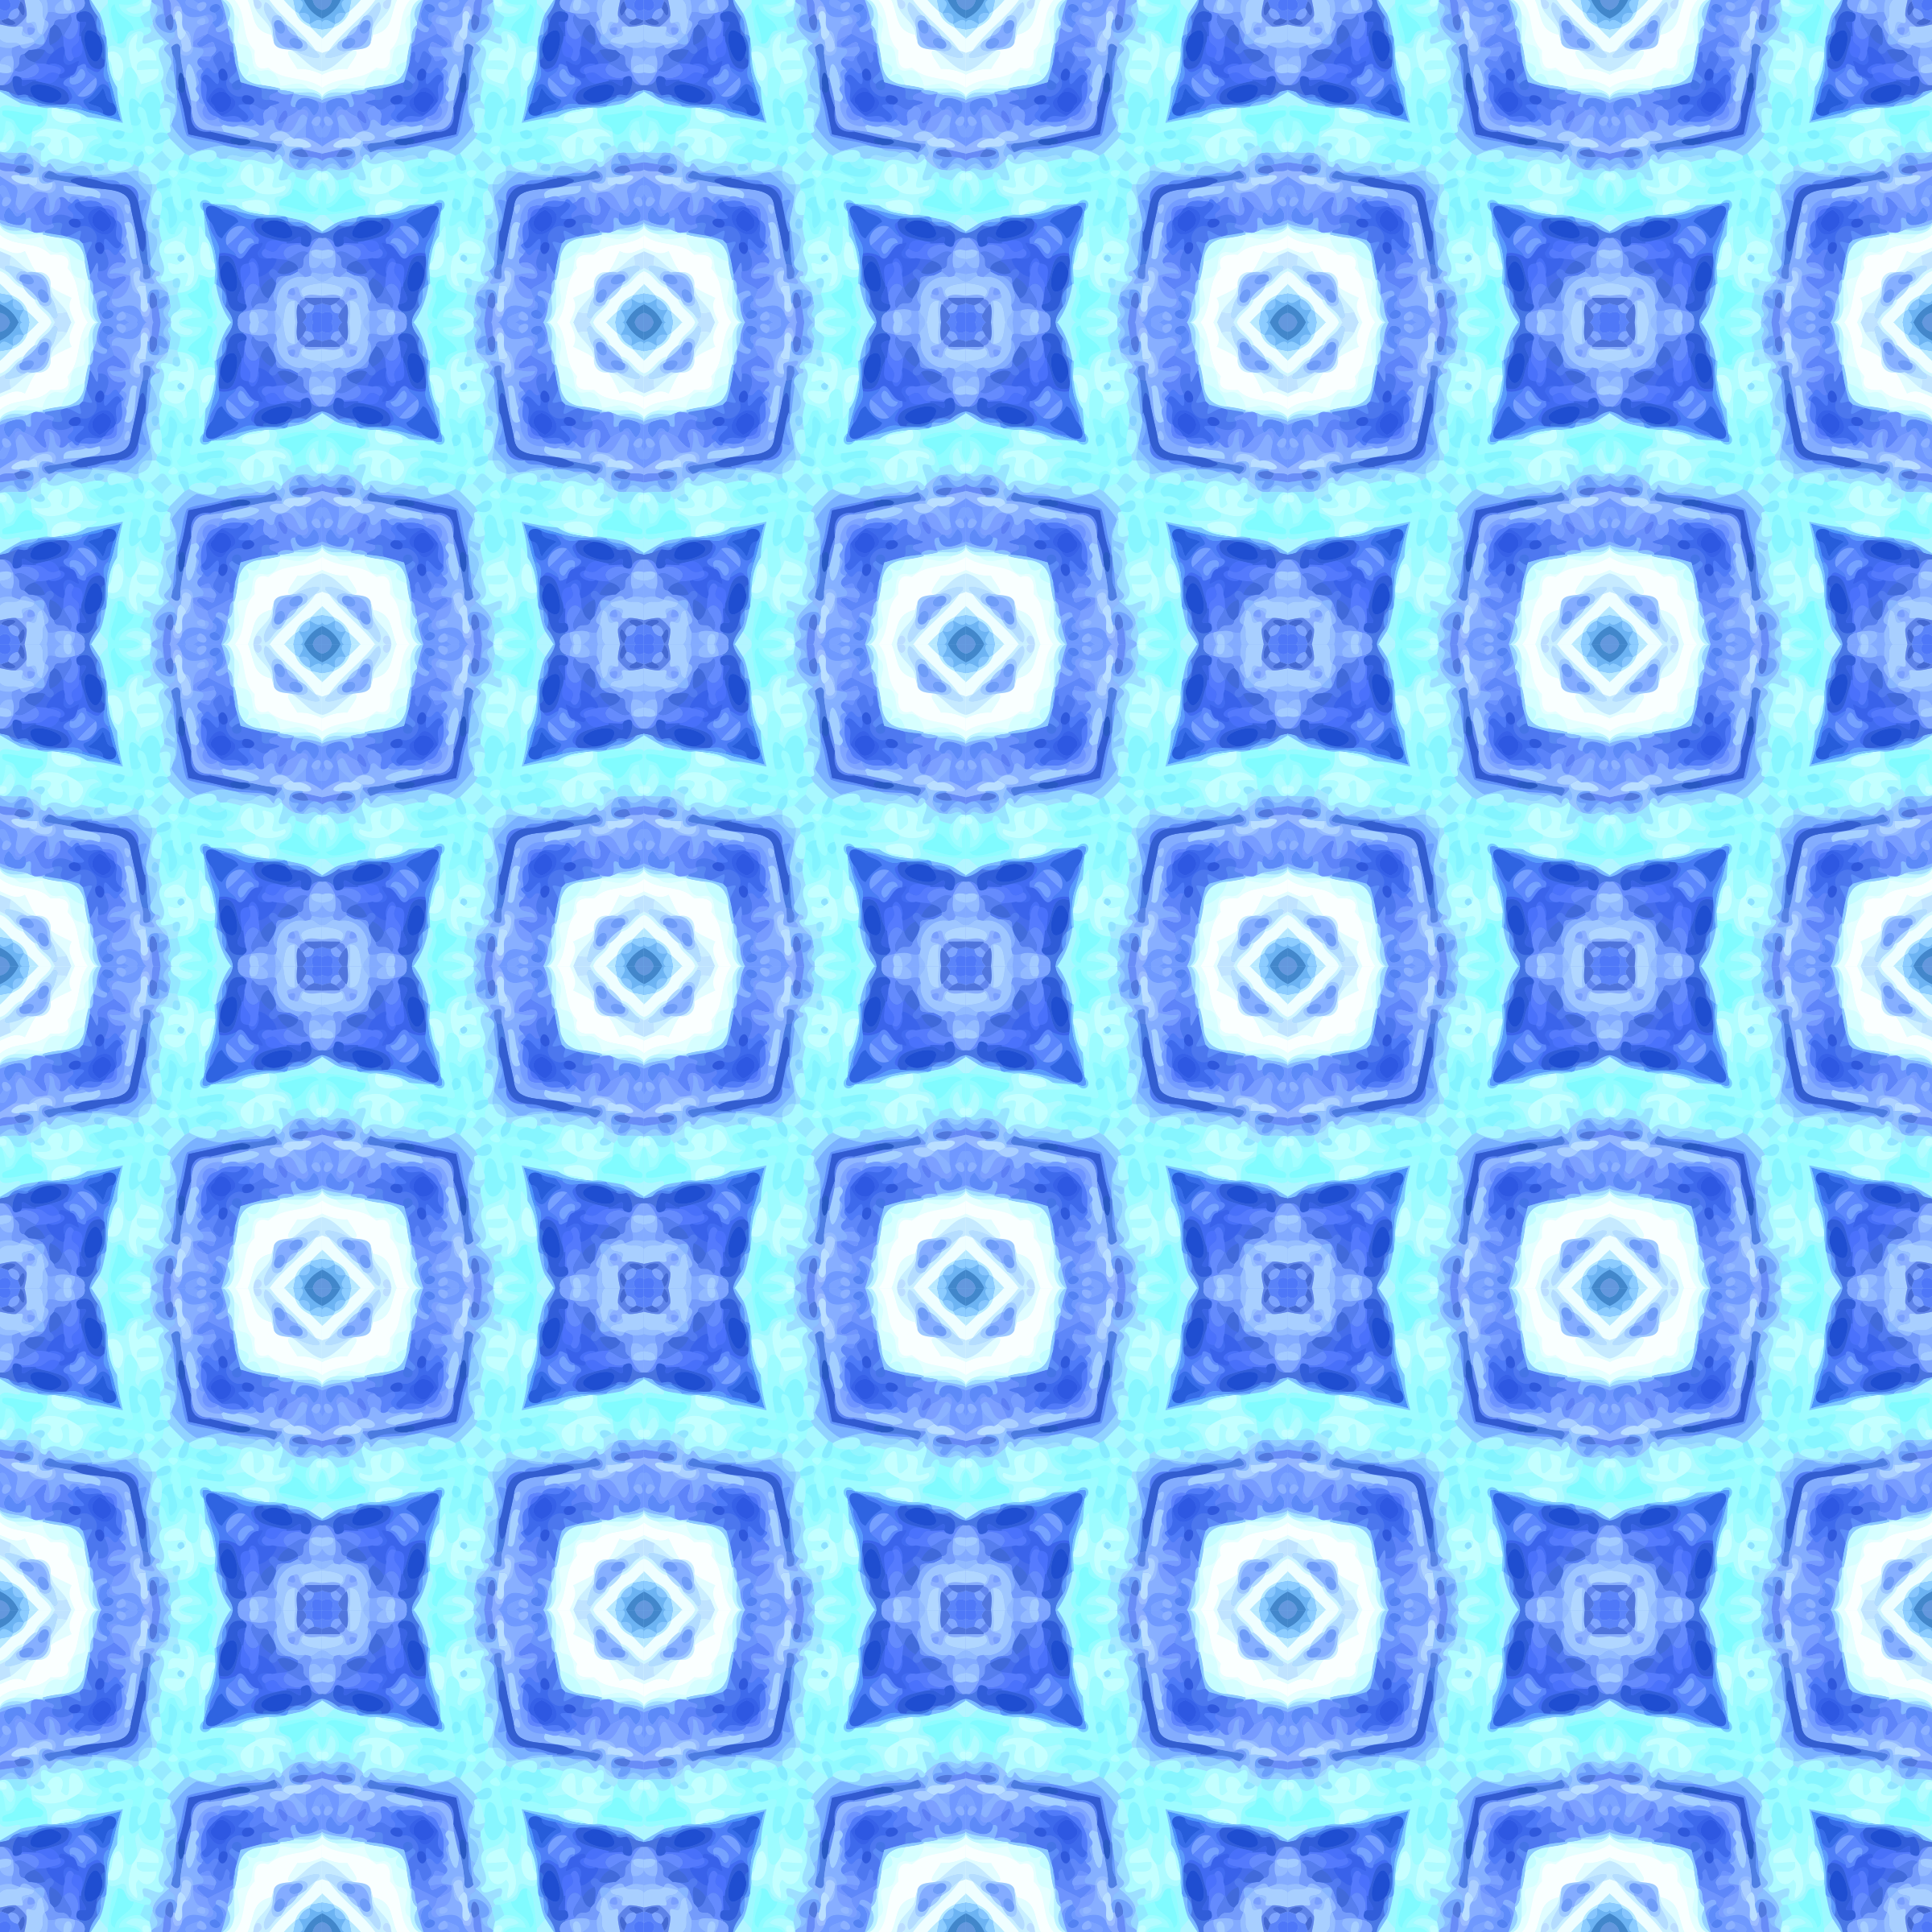 Background pattern 159 (colour 5) by Firkin